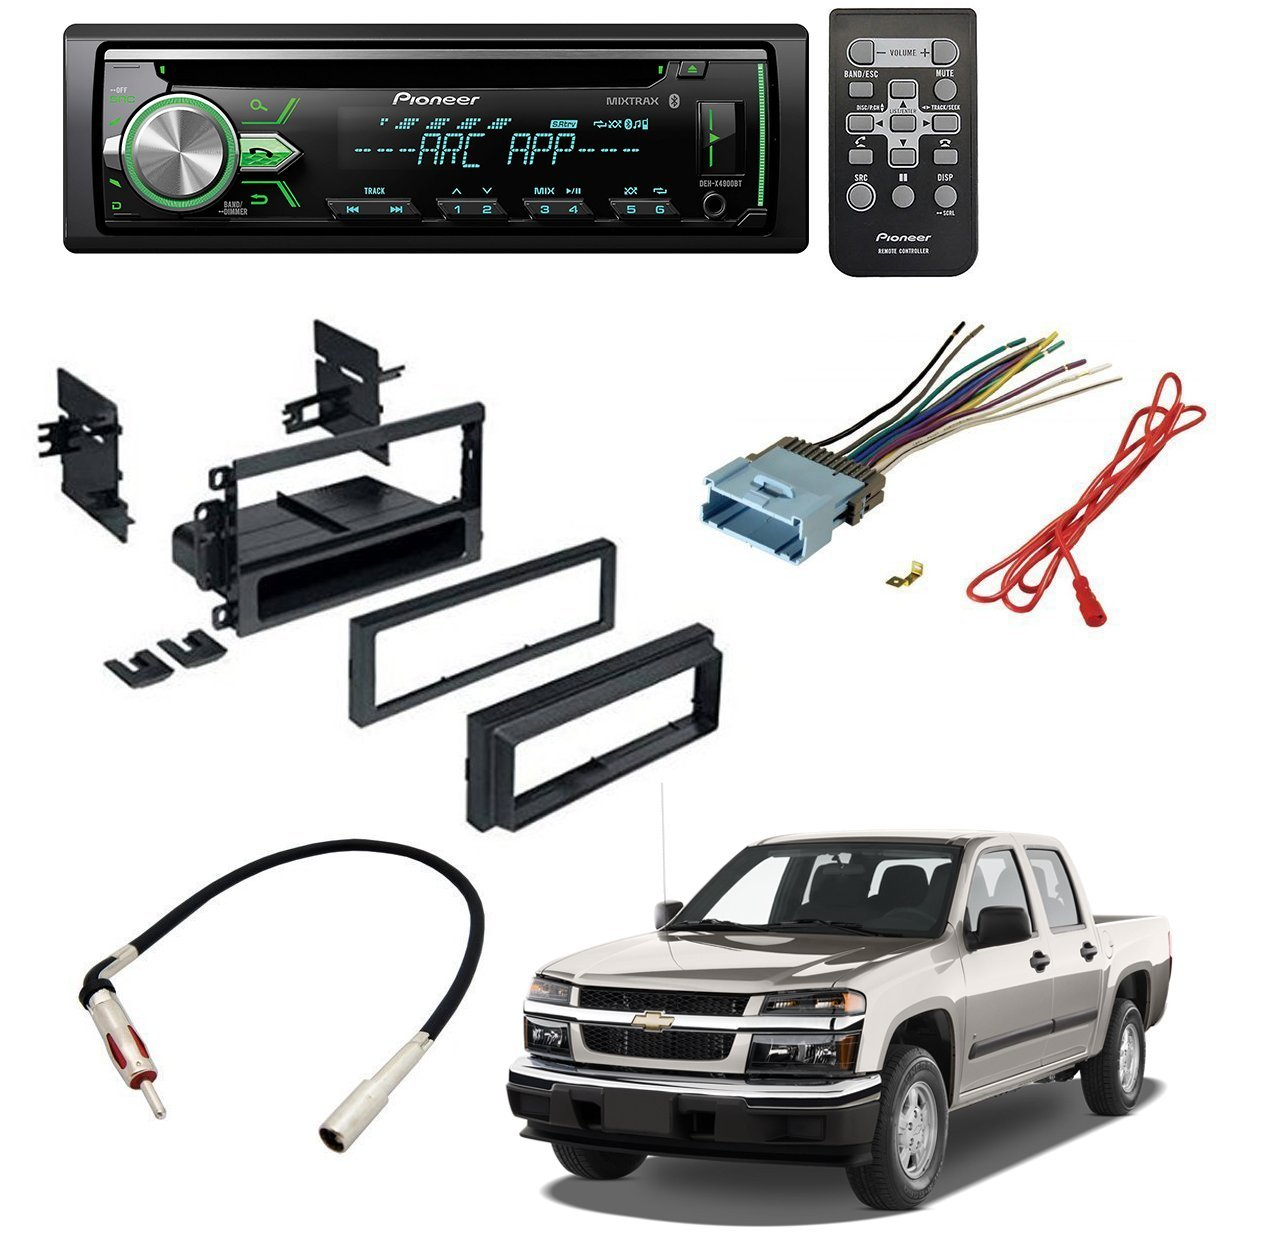 Low Price Chevrolet 2004 2012 Colorado Car Stereo Cd Player Dash Radio Mount Install Kit Wiring Harness Antenna Mounting Wire